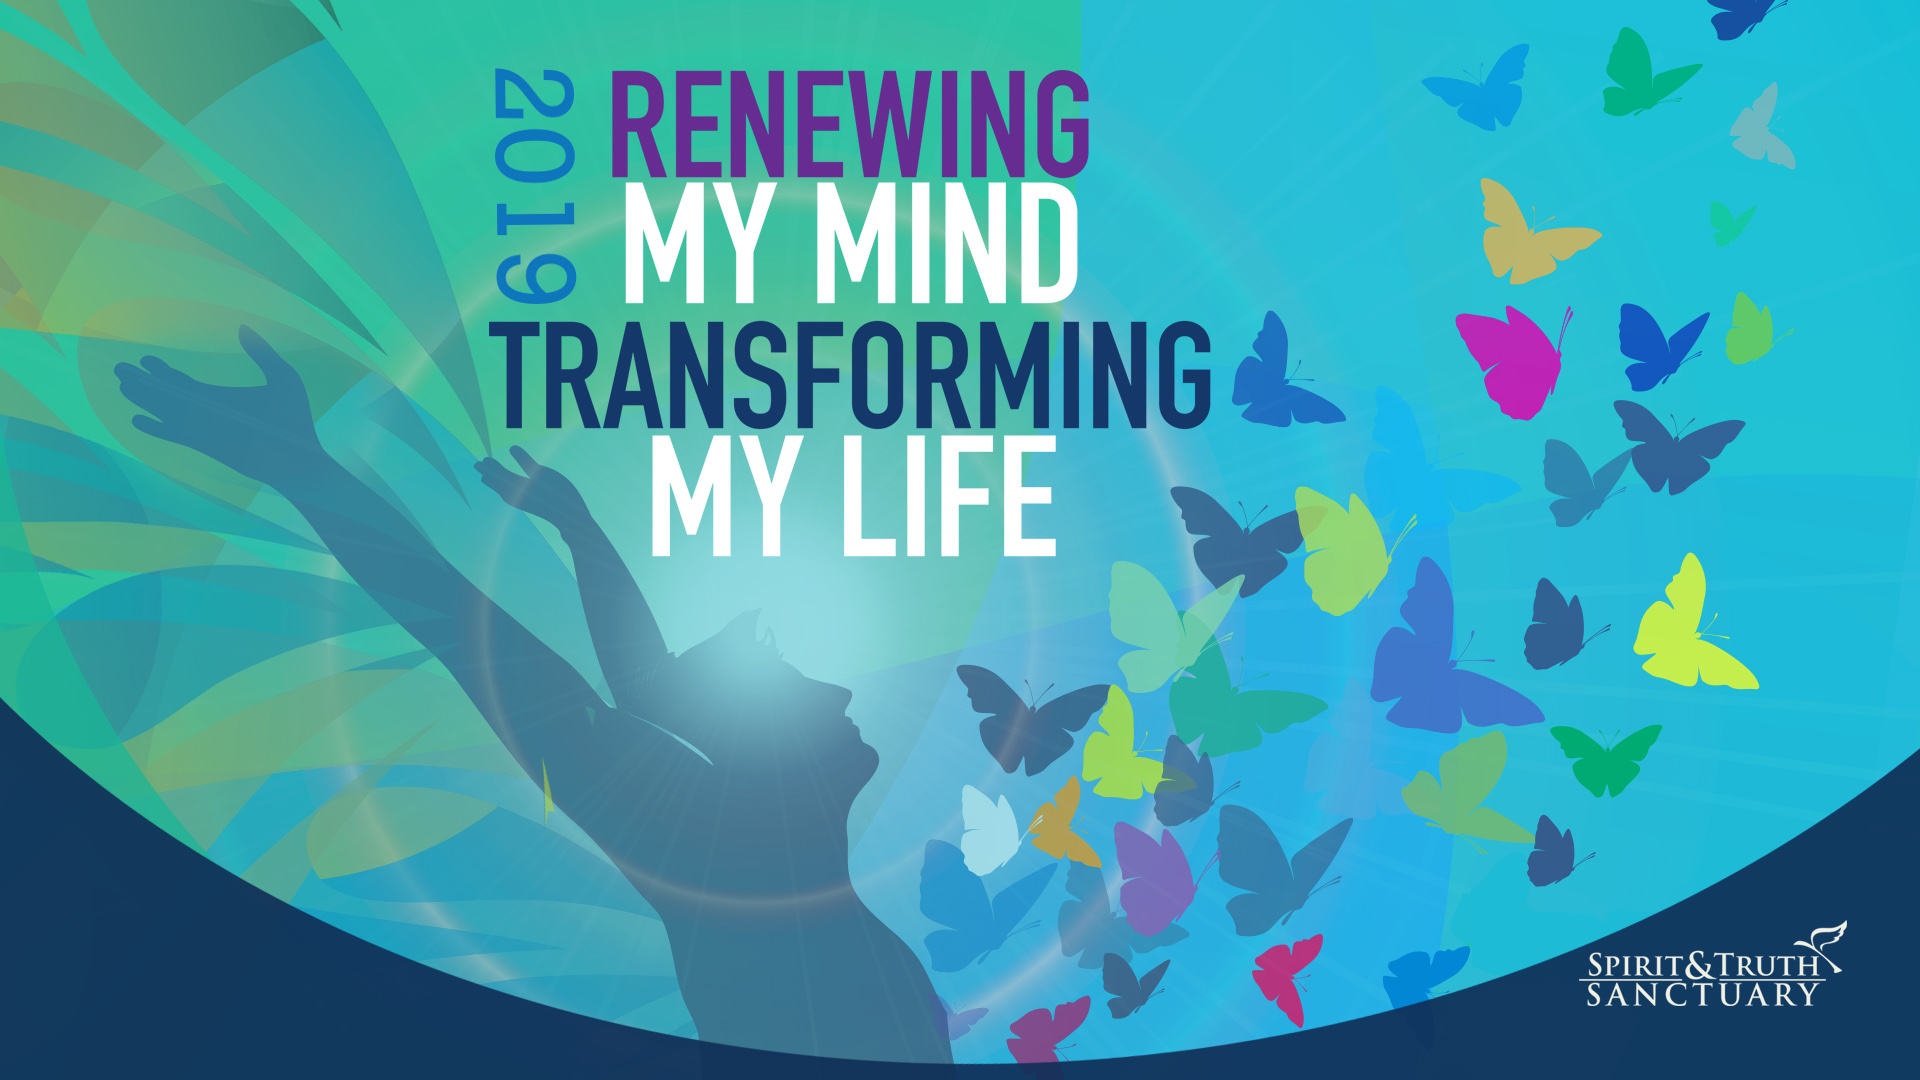 RenewING My Mind. TransformING My Life.